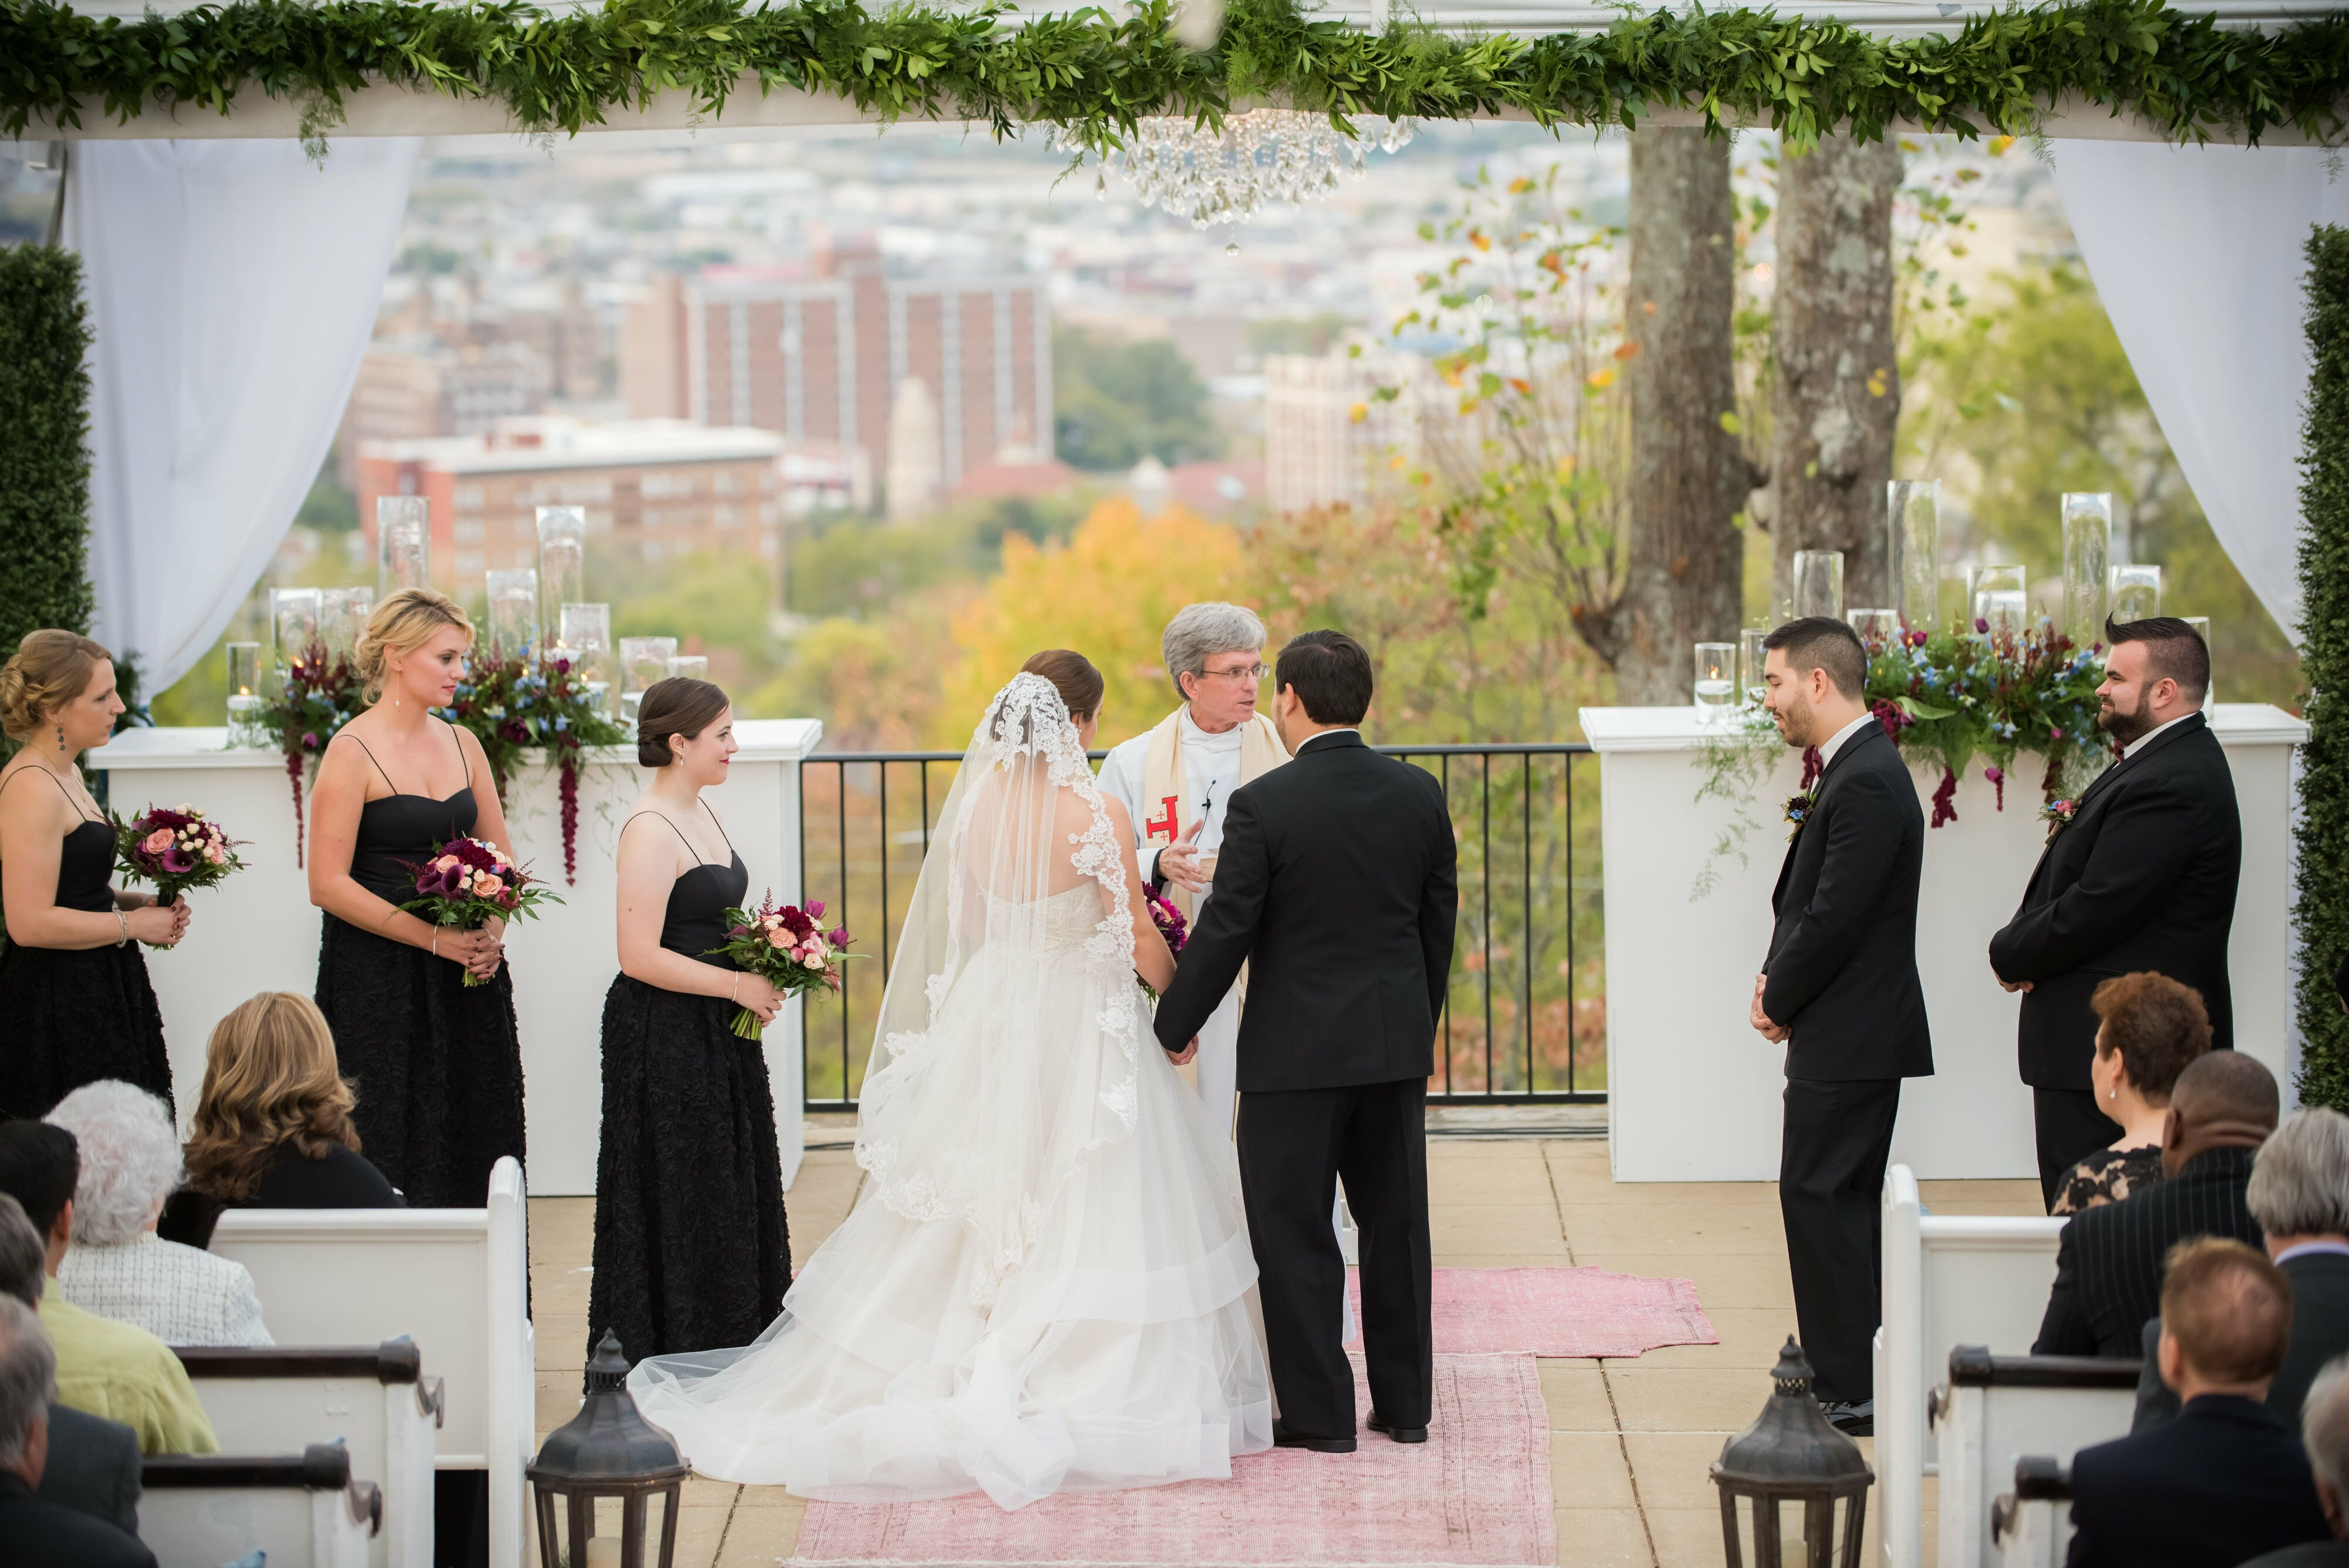 Weddings At Cabin Bluff Springville AL Capacity Up To 250